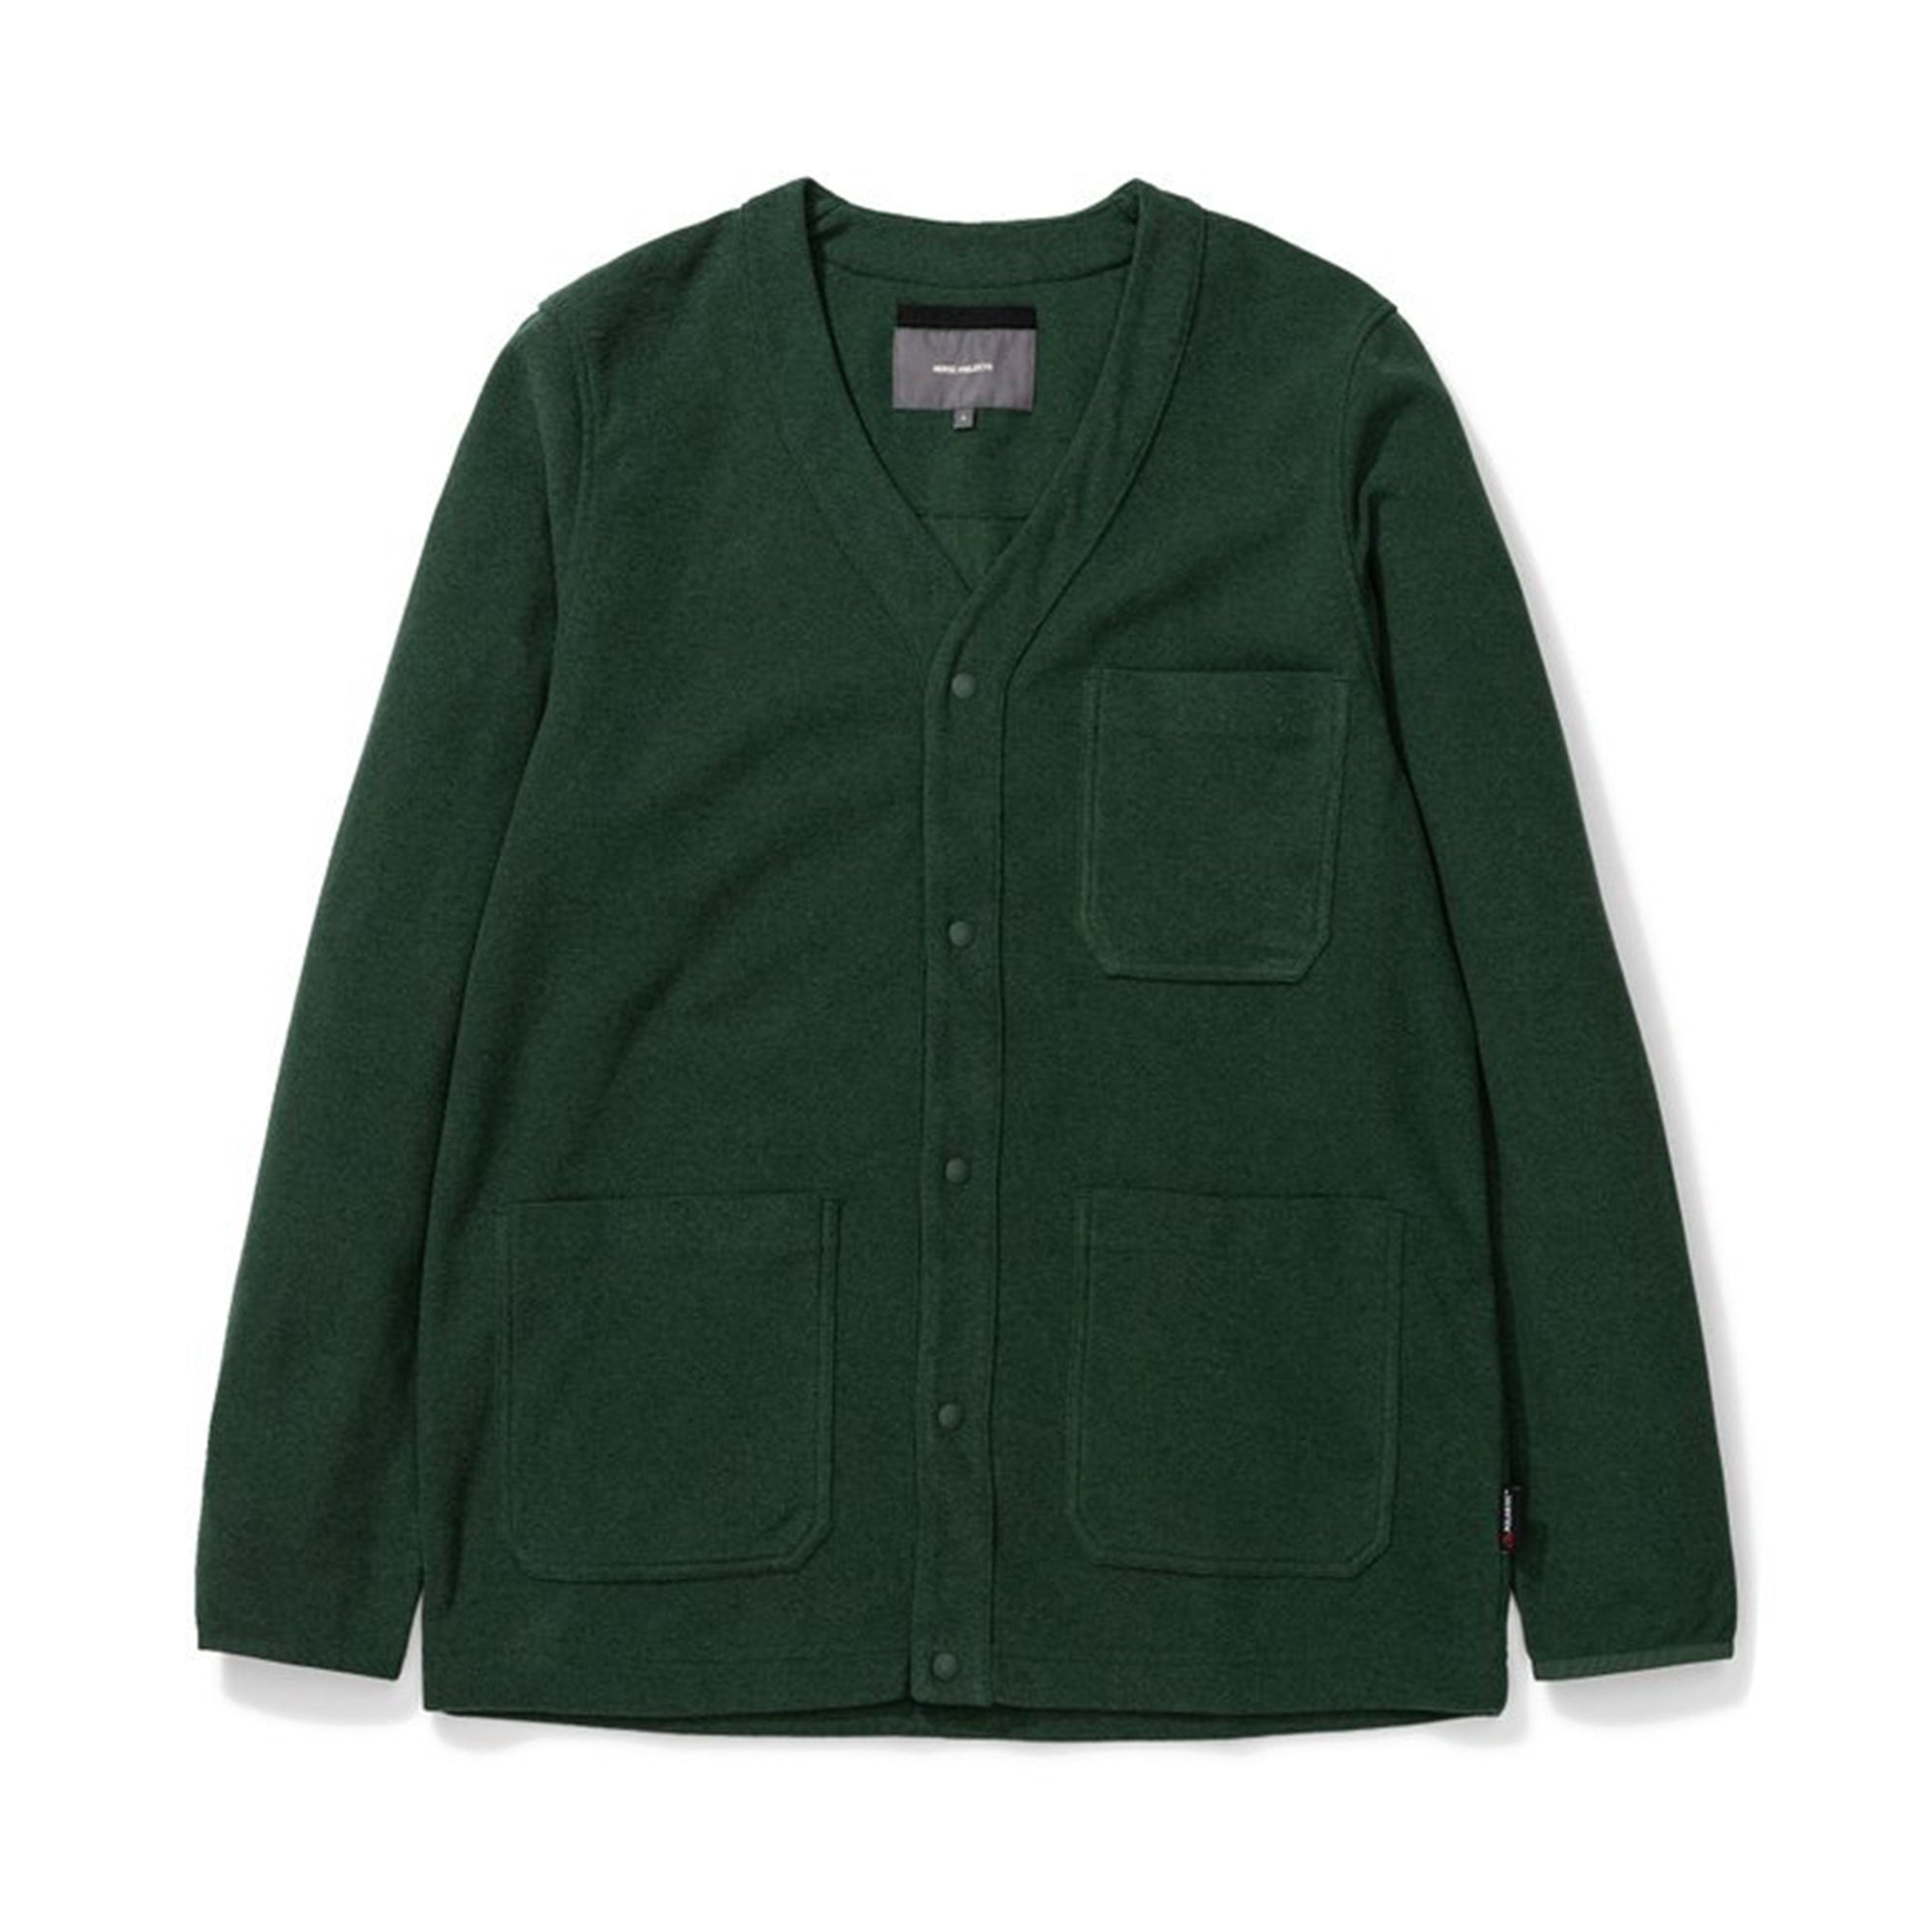 Norse Projects Vidar Fleece Jacket: Dartmouth Green - The Union Project